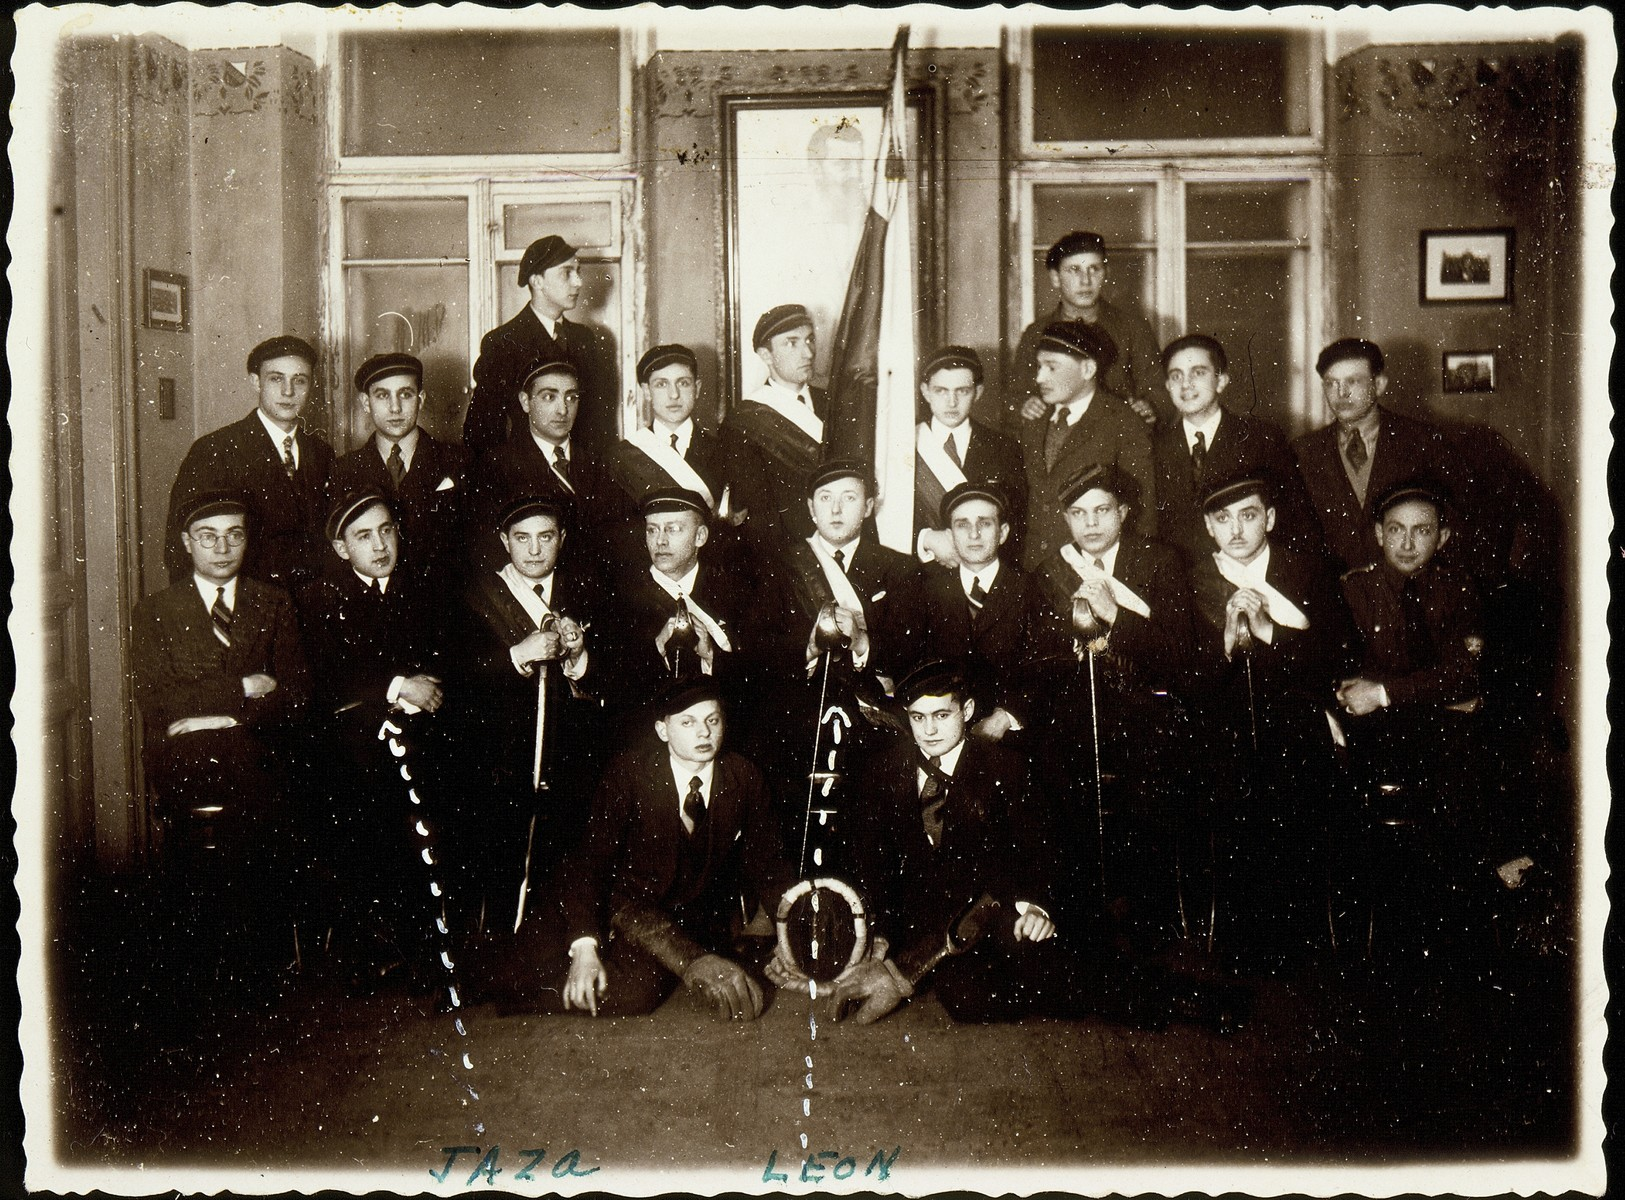 Members of the Jewish medical student fraternity at Vilna University.  Jews were excluded from the Polish student fraternity and therefore formed their own.  Among those pictured are Jasza Saposnikow, son of Sonia Saposnikow (middle row, second from the left), Leon Gordon  (middle row, fifth from the left), Yehoshua Fishman (middle row, far right).  Both Jasza and Leon perished during the Holocaust.